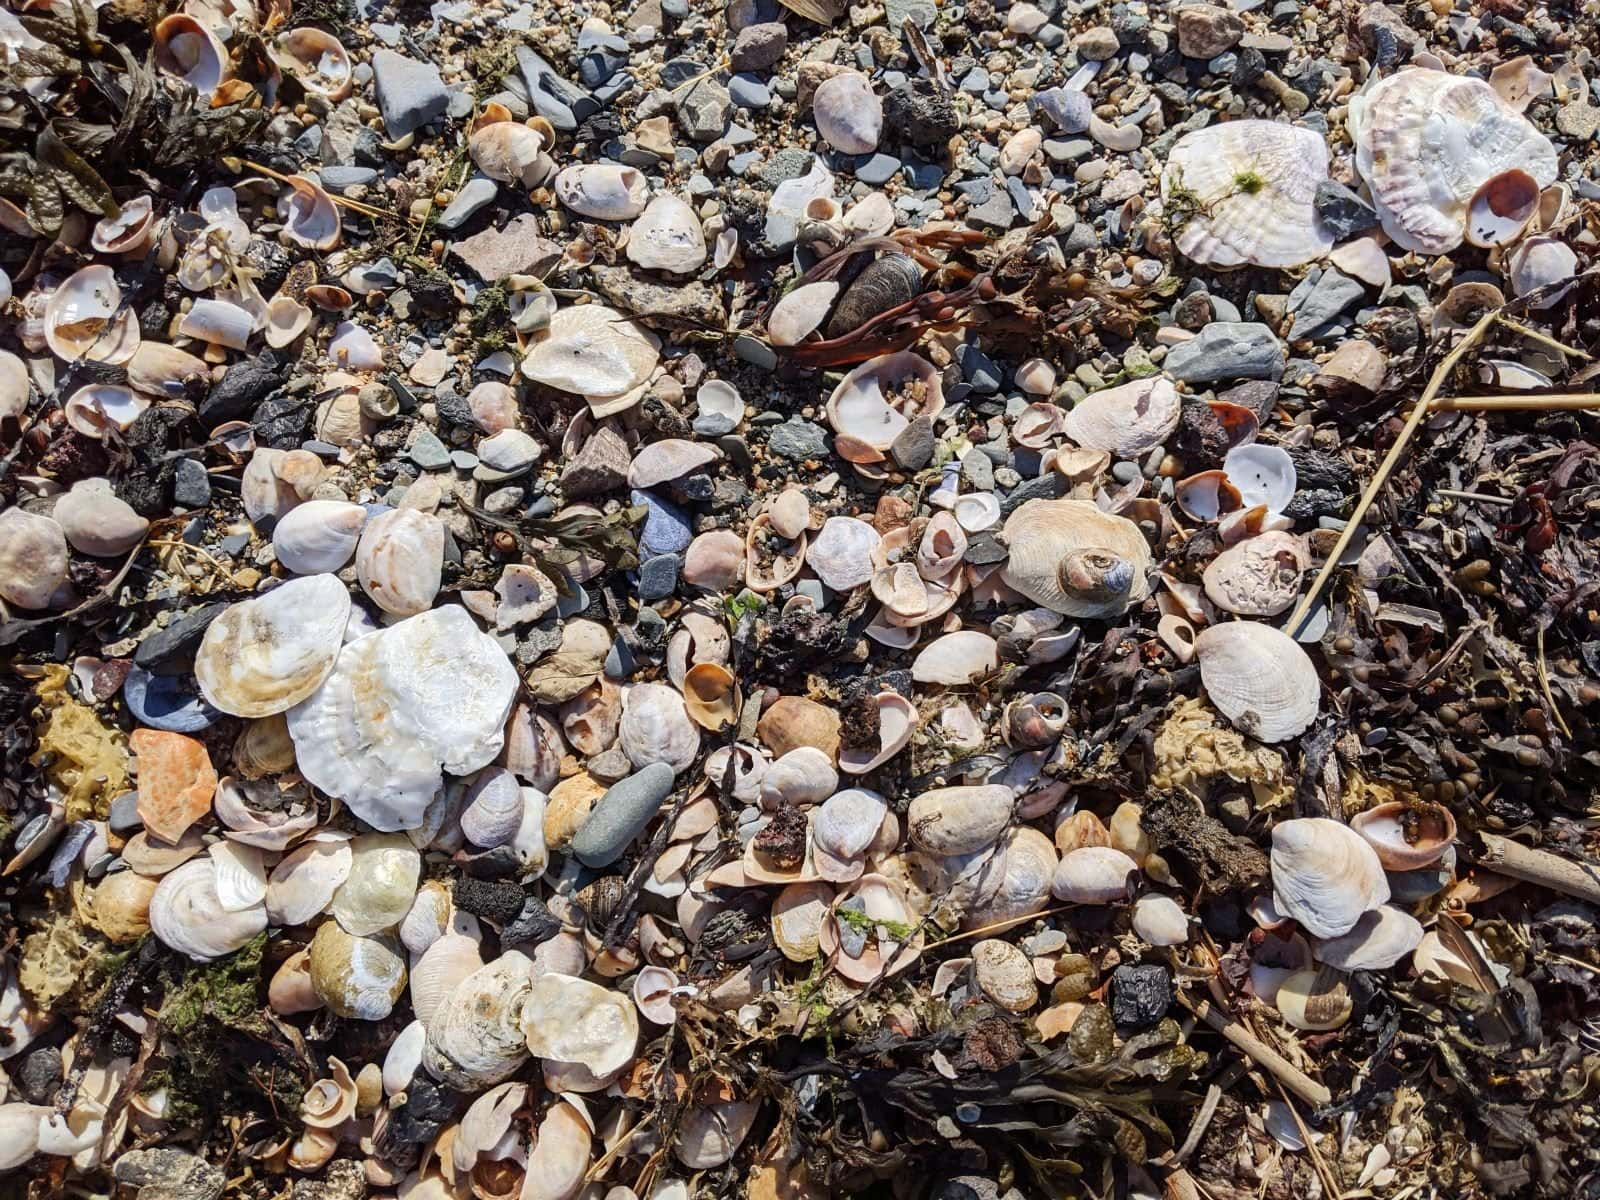 Seashells and pebbles on Spectacle Island beach